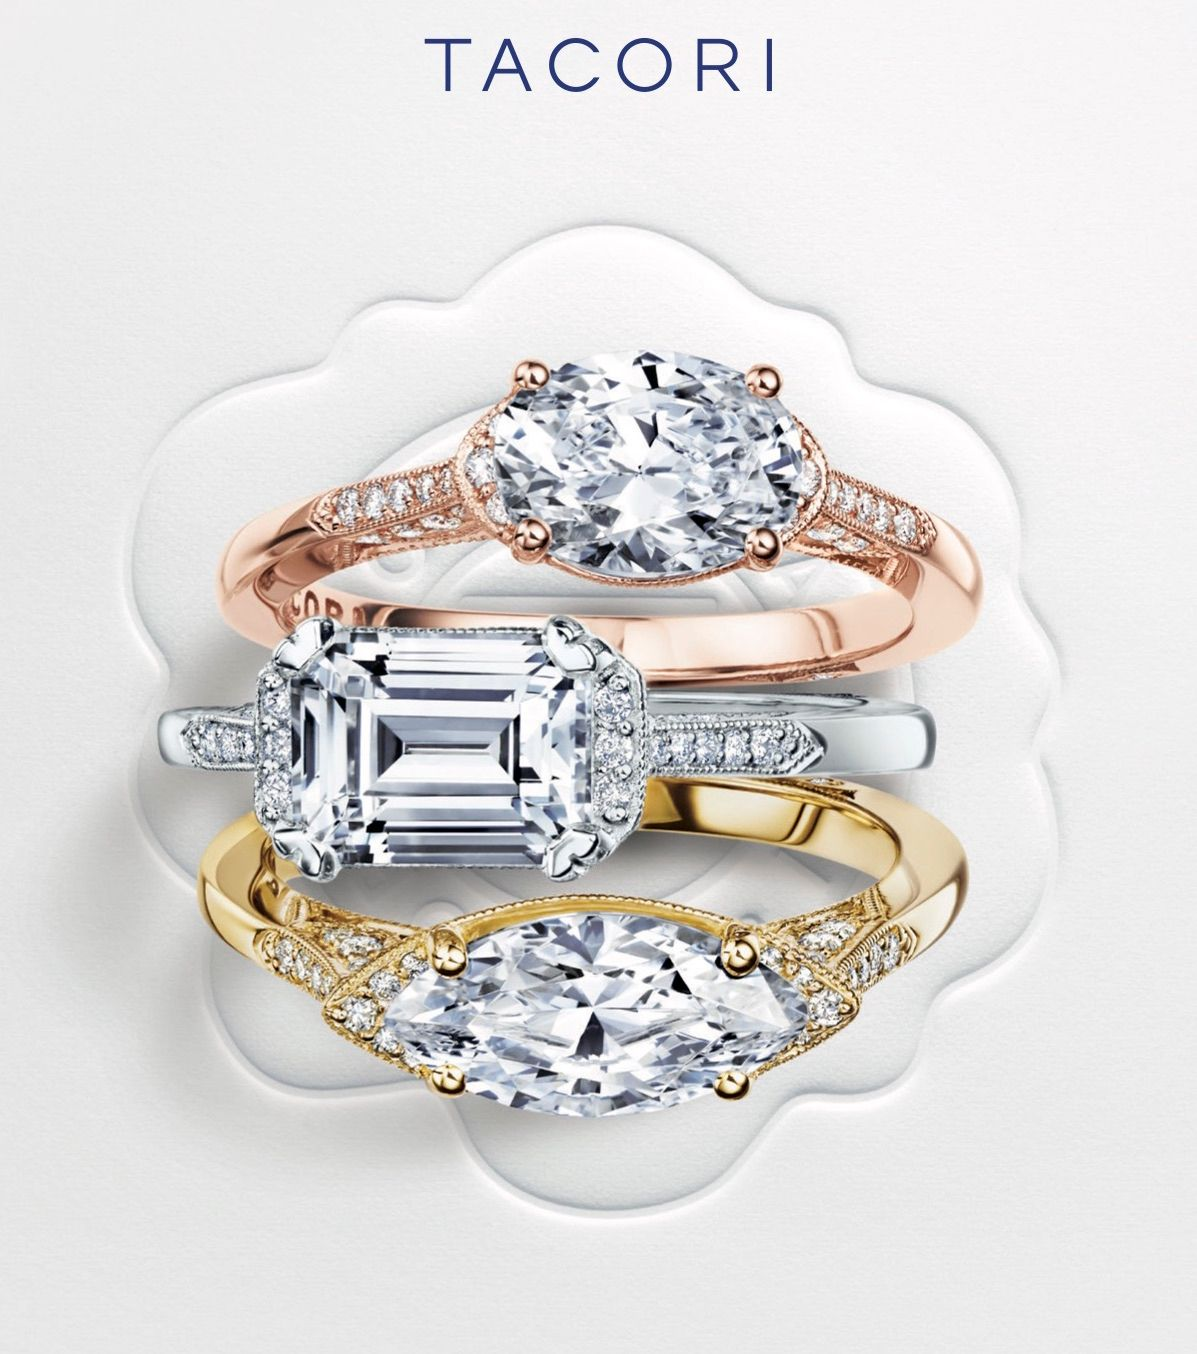 Only 11 days until our Fall into Tacori Savings weekend